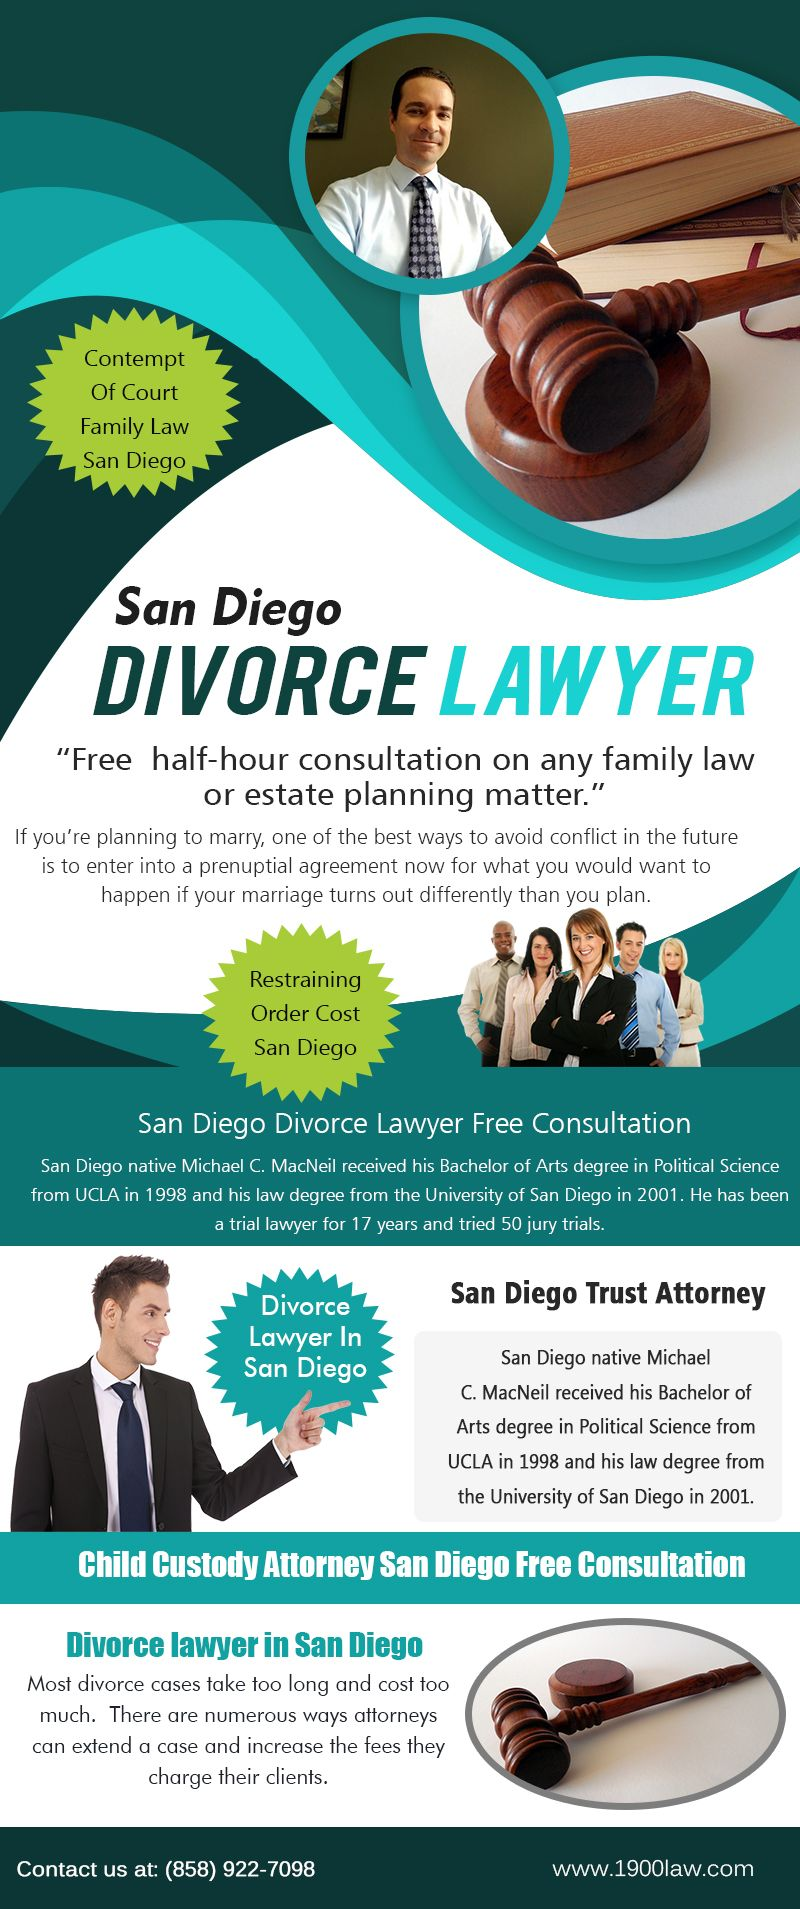 San Diego Divorce Lawyer Free Consultation that usually